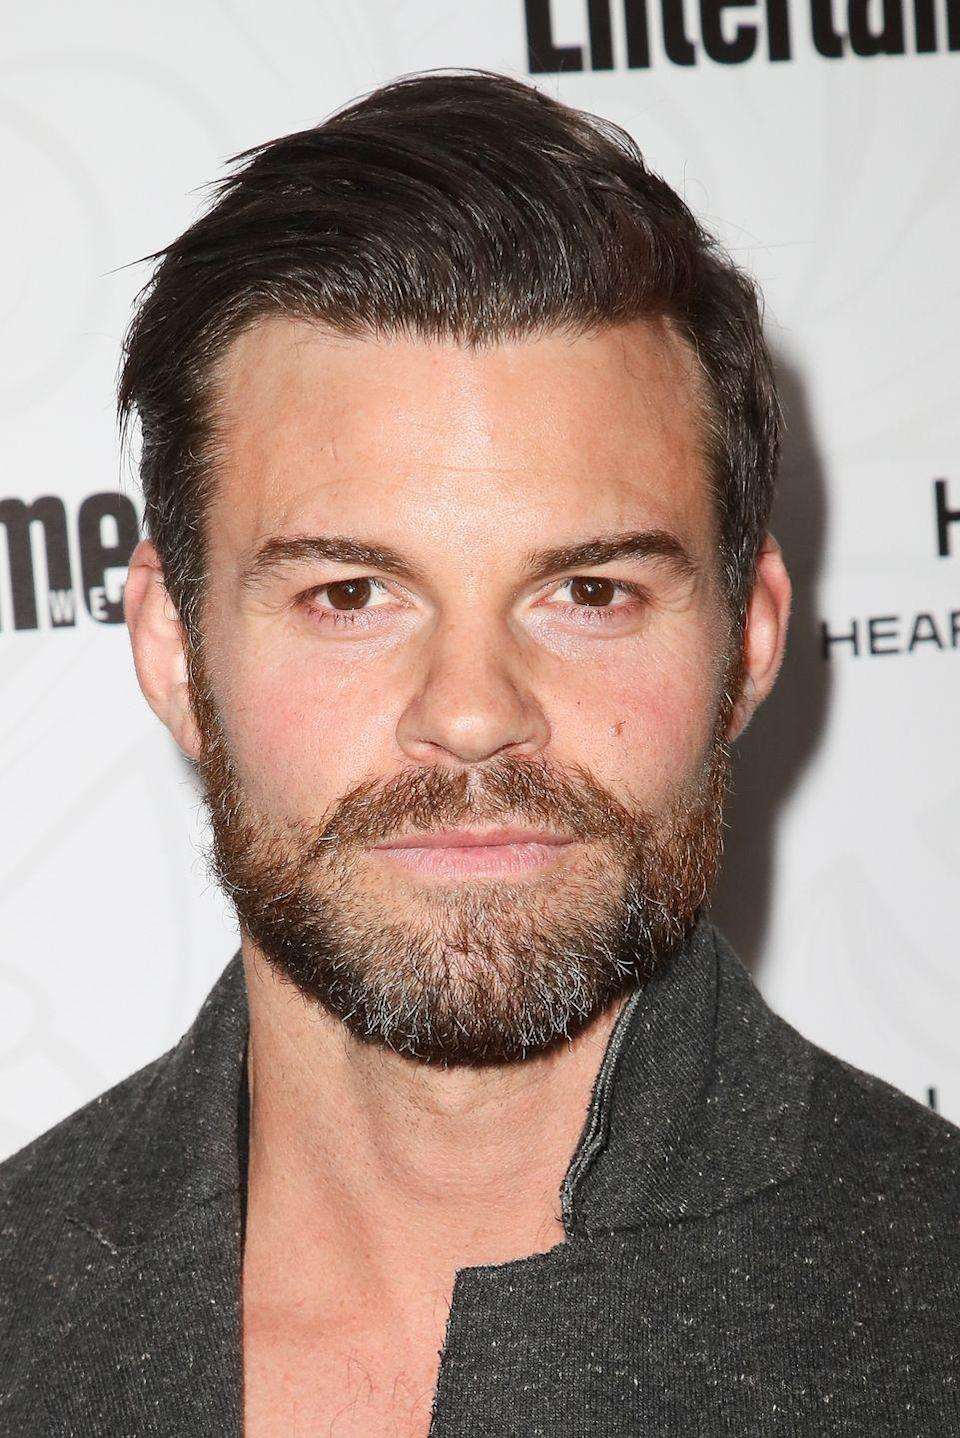 """<p>Mel's first husband, Mark, only appears in short flashbacks. But when he's there, he's played by Daniel Gillies—who, like Martin Henderson (Jack), is originally from New Zealand. Coincidence, or does Mel have a type? Gillies is best known for his work on the vampire-centric shows <em><a href=""""https://www.netflix.com/watch/70143860?source=35"""" rel=""""nofollow noopener"""" target=""""_blank"""" data-ylk=""""slk:The Vampire Diaries"""" class=""""link rapid-noclick-resp"""">The Vampire Diaries</a> </em>and its spin-off <em><a href=""""https://www.netflix.com/watch/70283261?source=35"""" rel=""""nofollow noopener"""" target=""""_blank"""" data-ylk=""""slk:The Originals."""" class=""""link rapid-noclick-resp"""">The Originals. </a></em></p><p><strong>Find him on Instagram: </strong><strong>@<a href=""""https://www.instagram.com/mr.danielgillies/"""" rel=""""nofollow noopener"""" target=""""_blank"""" data-ylk=""""slk:mr.danielgillies"""" class=""""link rapid-noclick-resp"""">mr.danielgillies</a></strong><br></p>"""